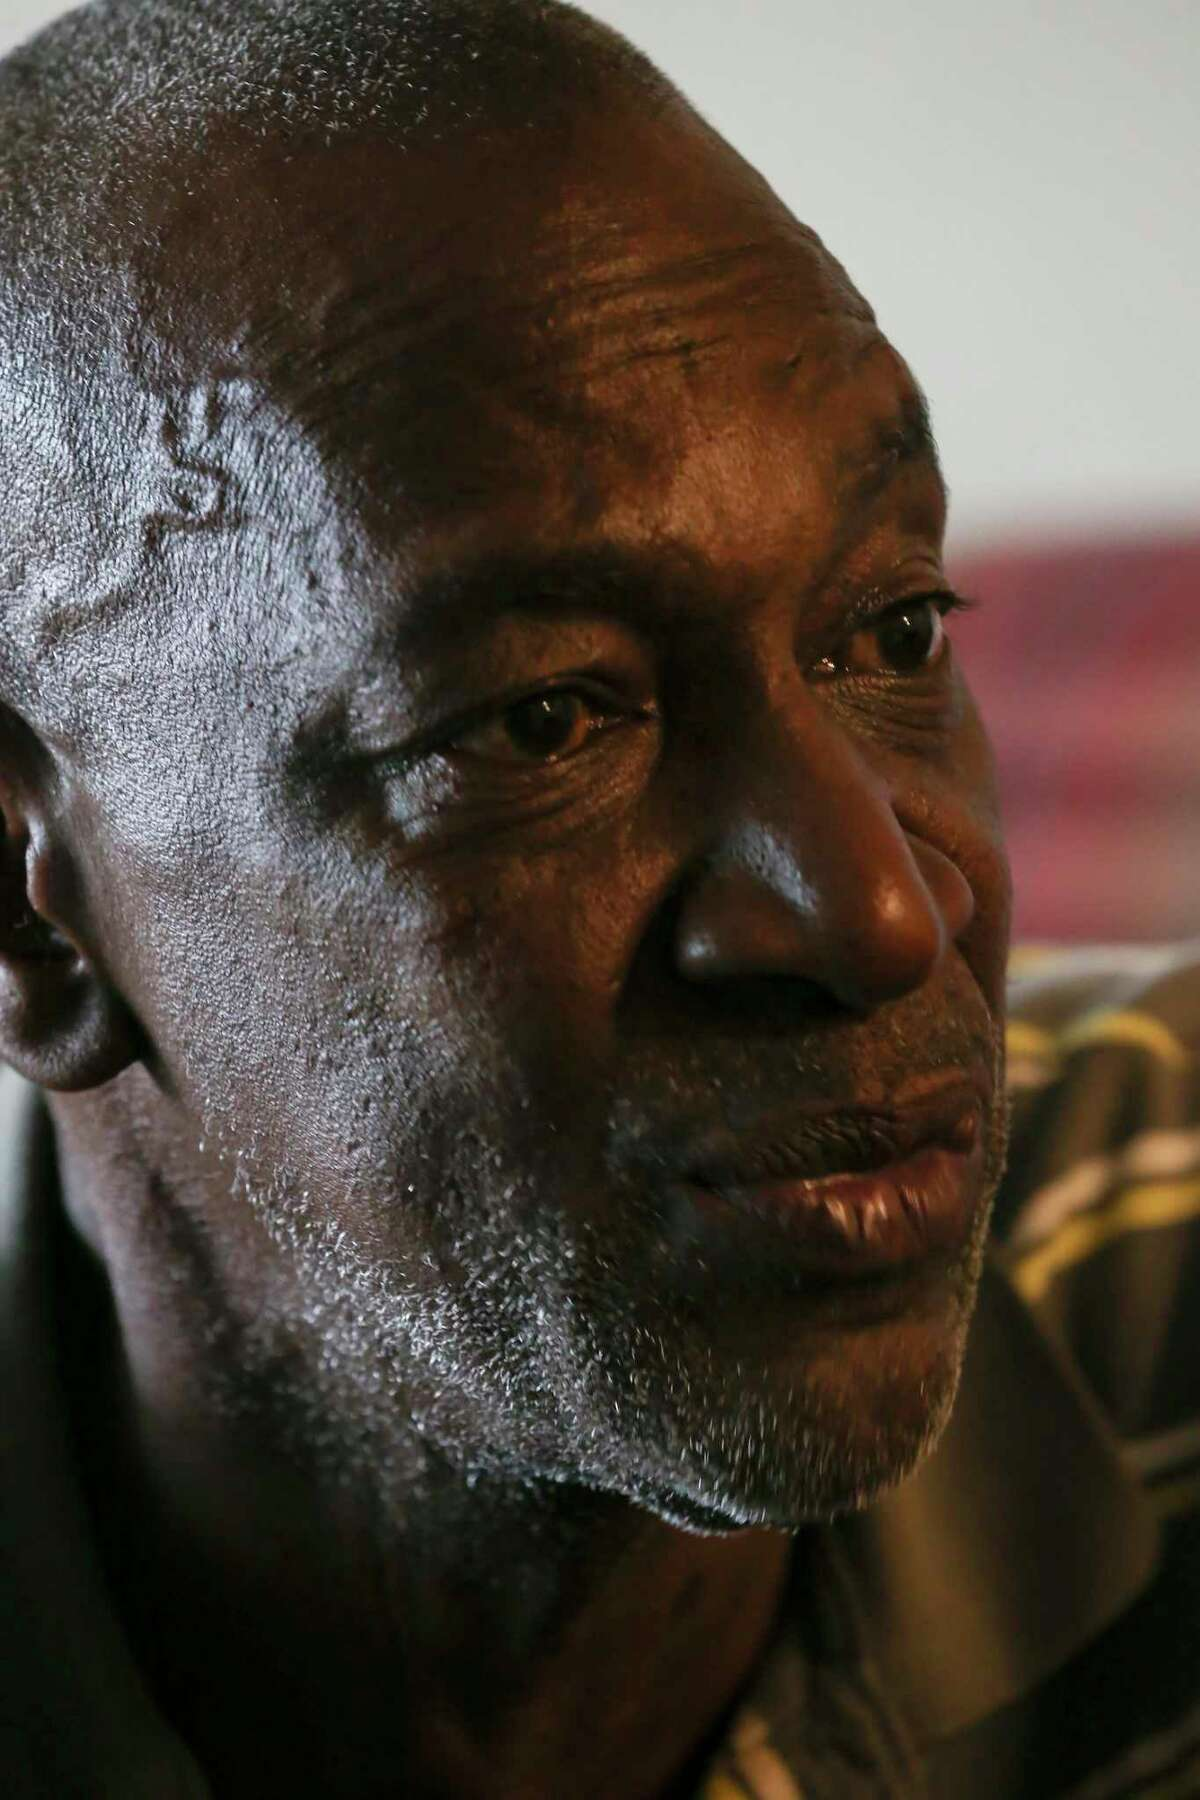 Larry McCoy, 57, reflects on his life during an interview at his apartment, Friday, April 23, 2021. McCoy, a nine-year Air Force veteran who served in Desert Storm, was homeless, not for the first time, when he was kicked out of a previous apartment in July 2019. Suffering from depression and schizophrenia, he was able to rent the apartment with help from the Veteran Affairs Supportive Housing Voucher program. He moved into the apartment in August 2019.